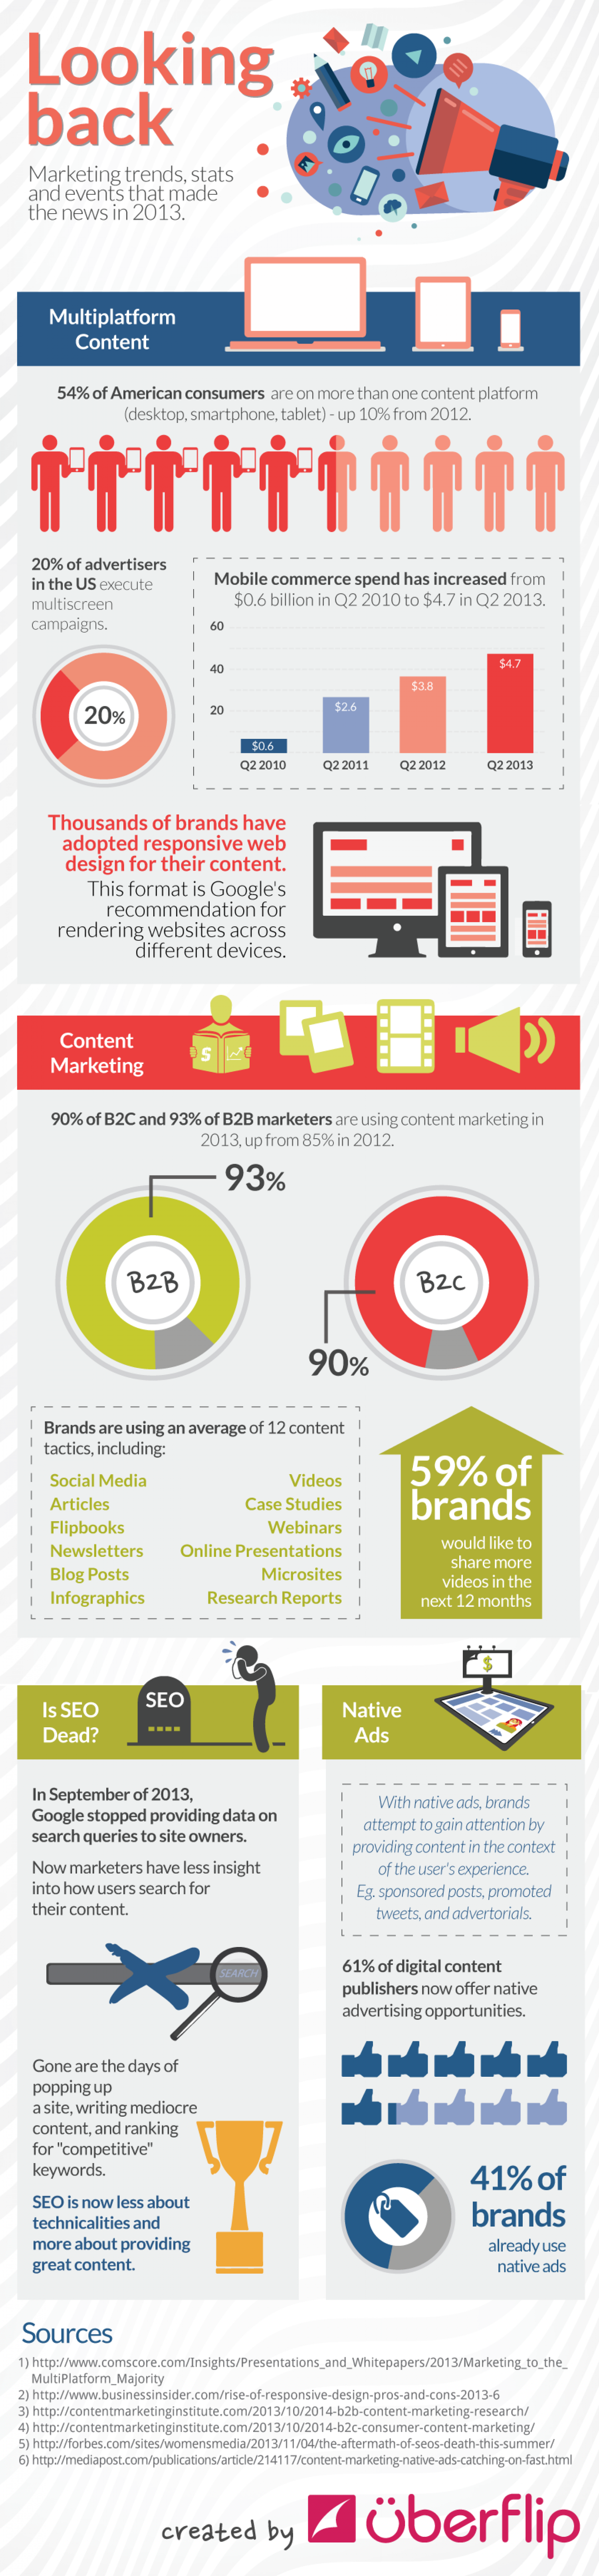 A Look Back At Marketing Trends Of 2013 Infographic